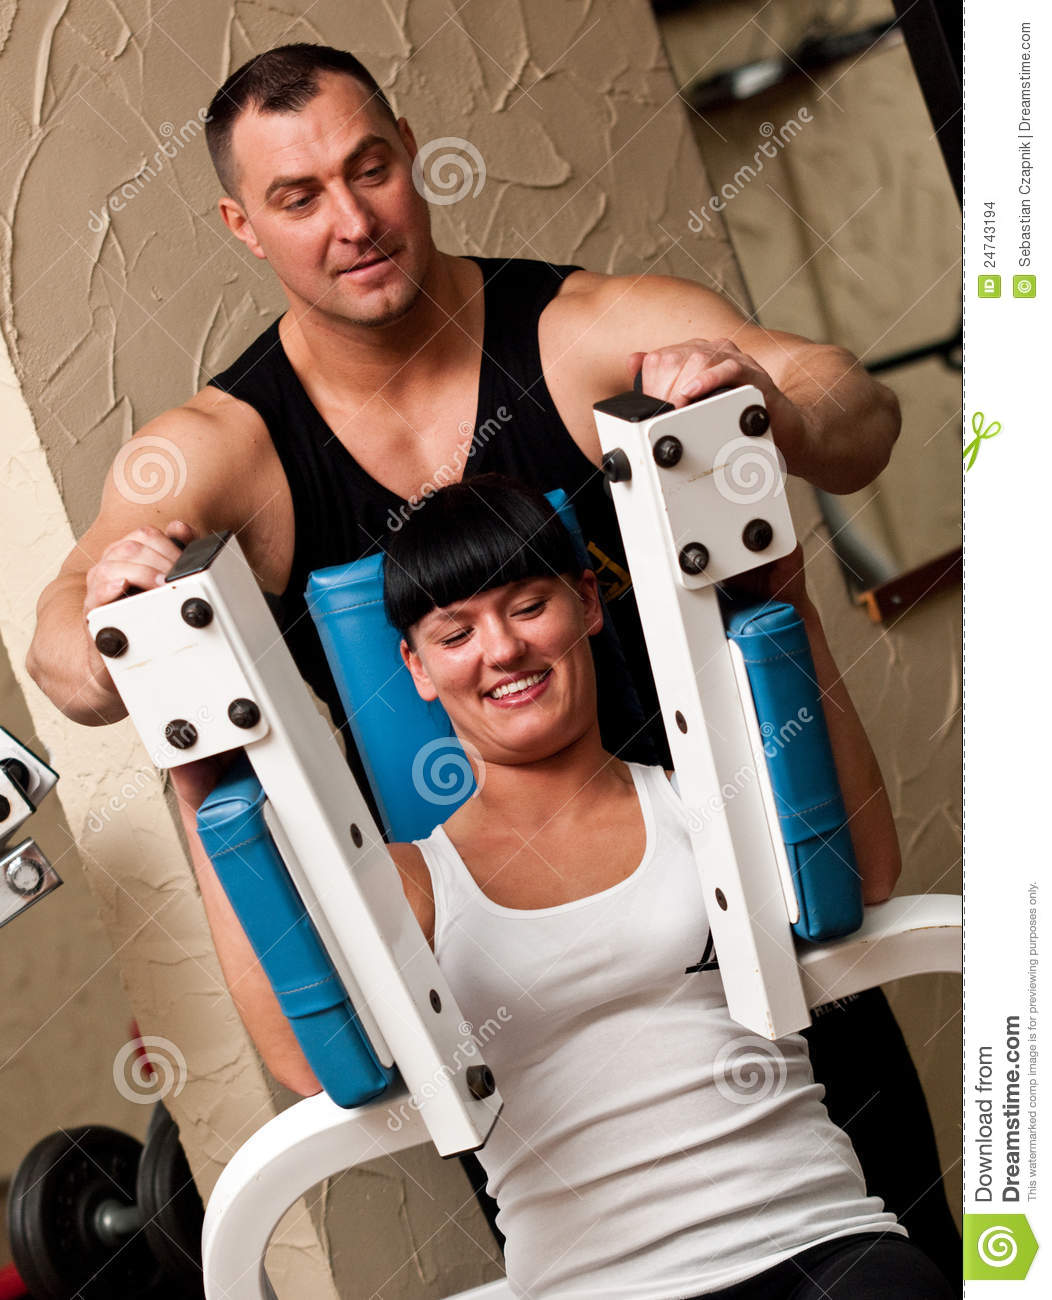 Professional Gym Instructor Stock Images - Image: 24743194